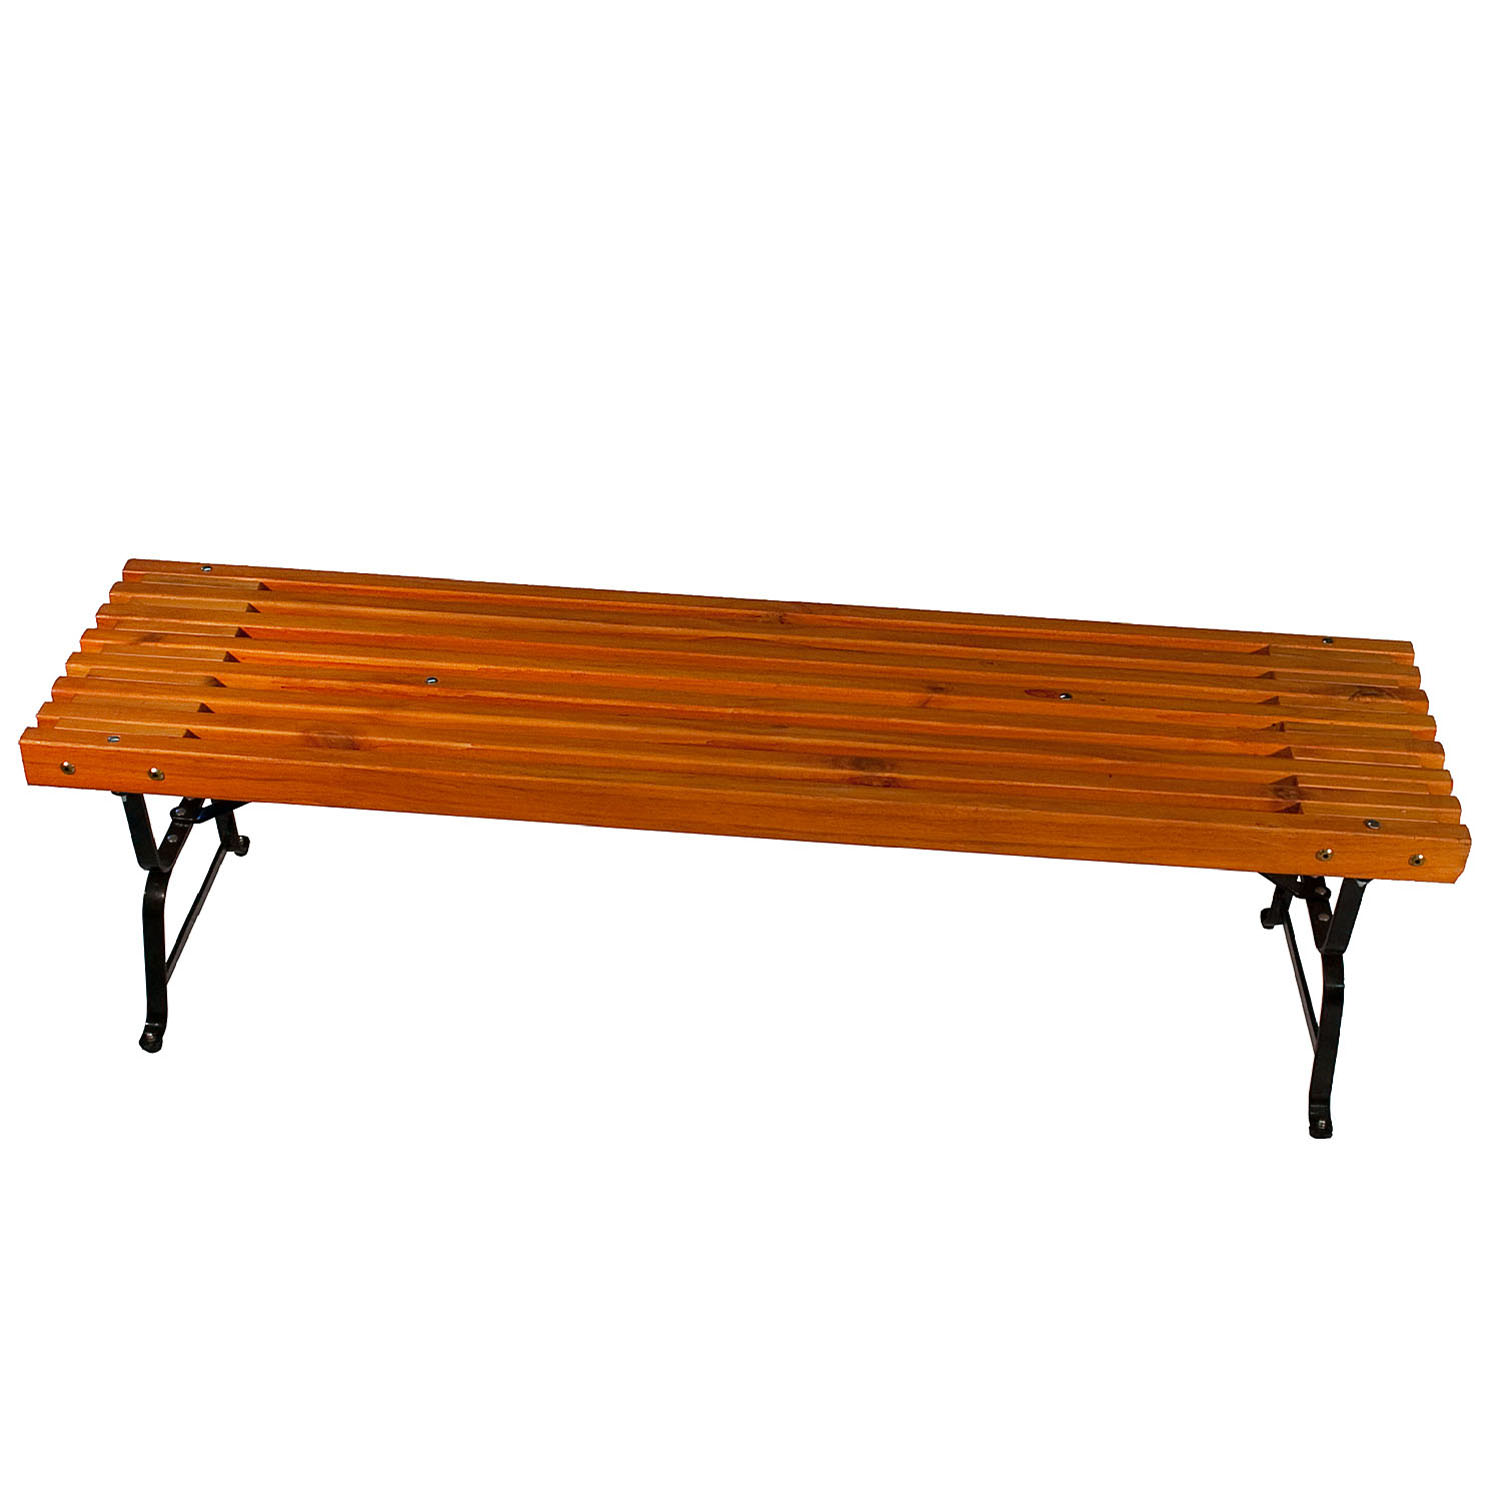 Mall Style Outdoor Bench with Black Powder Coated Steel Frame, Southern Yellow Pine